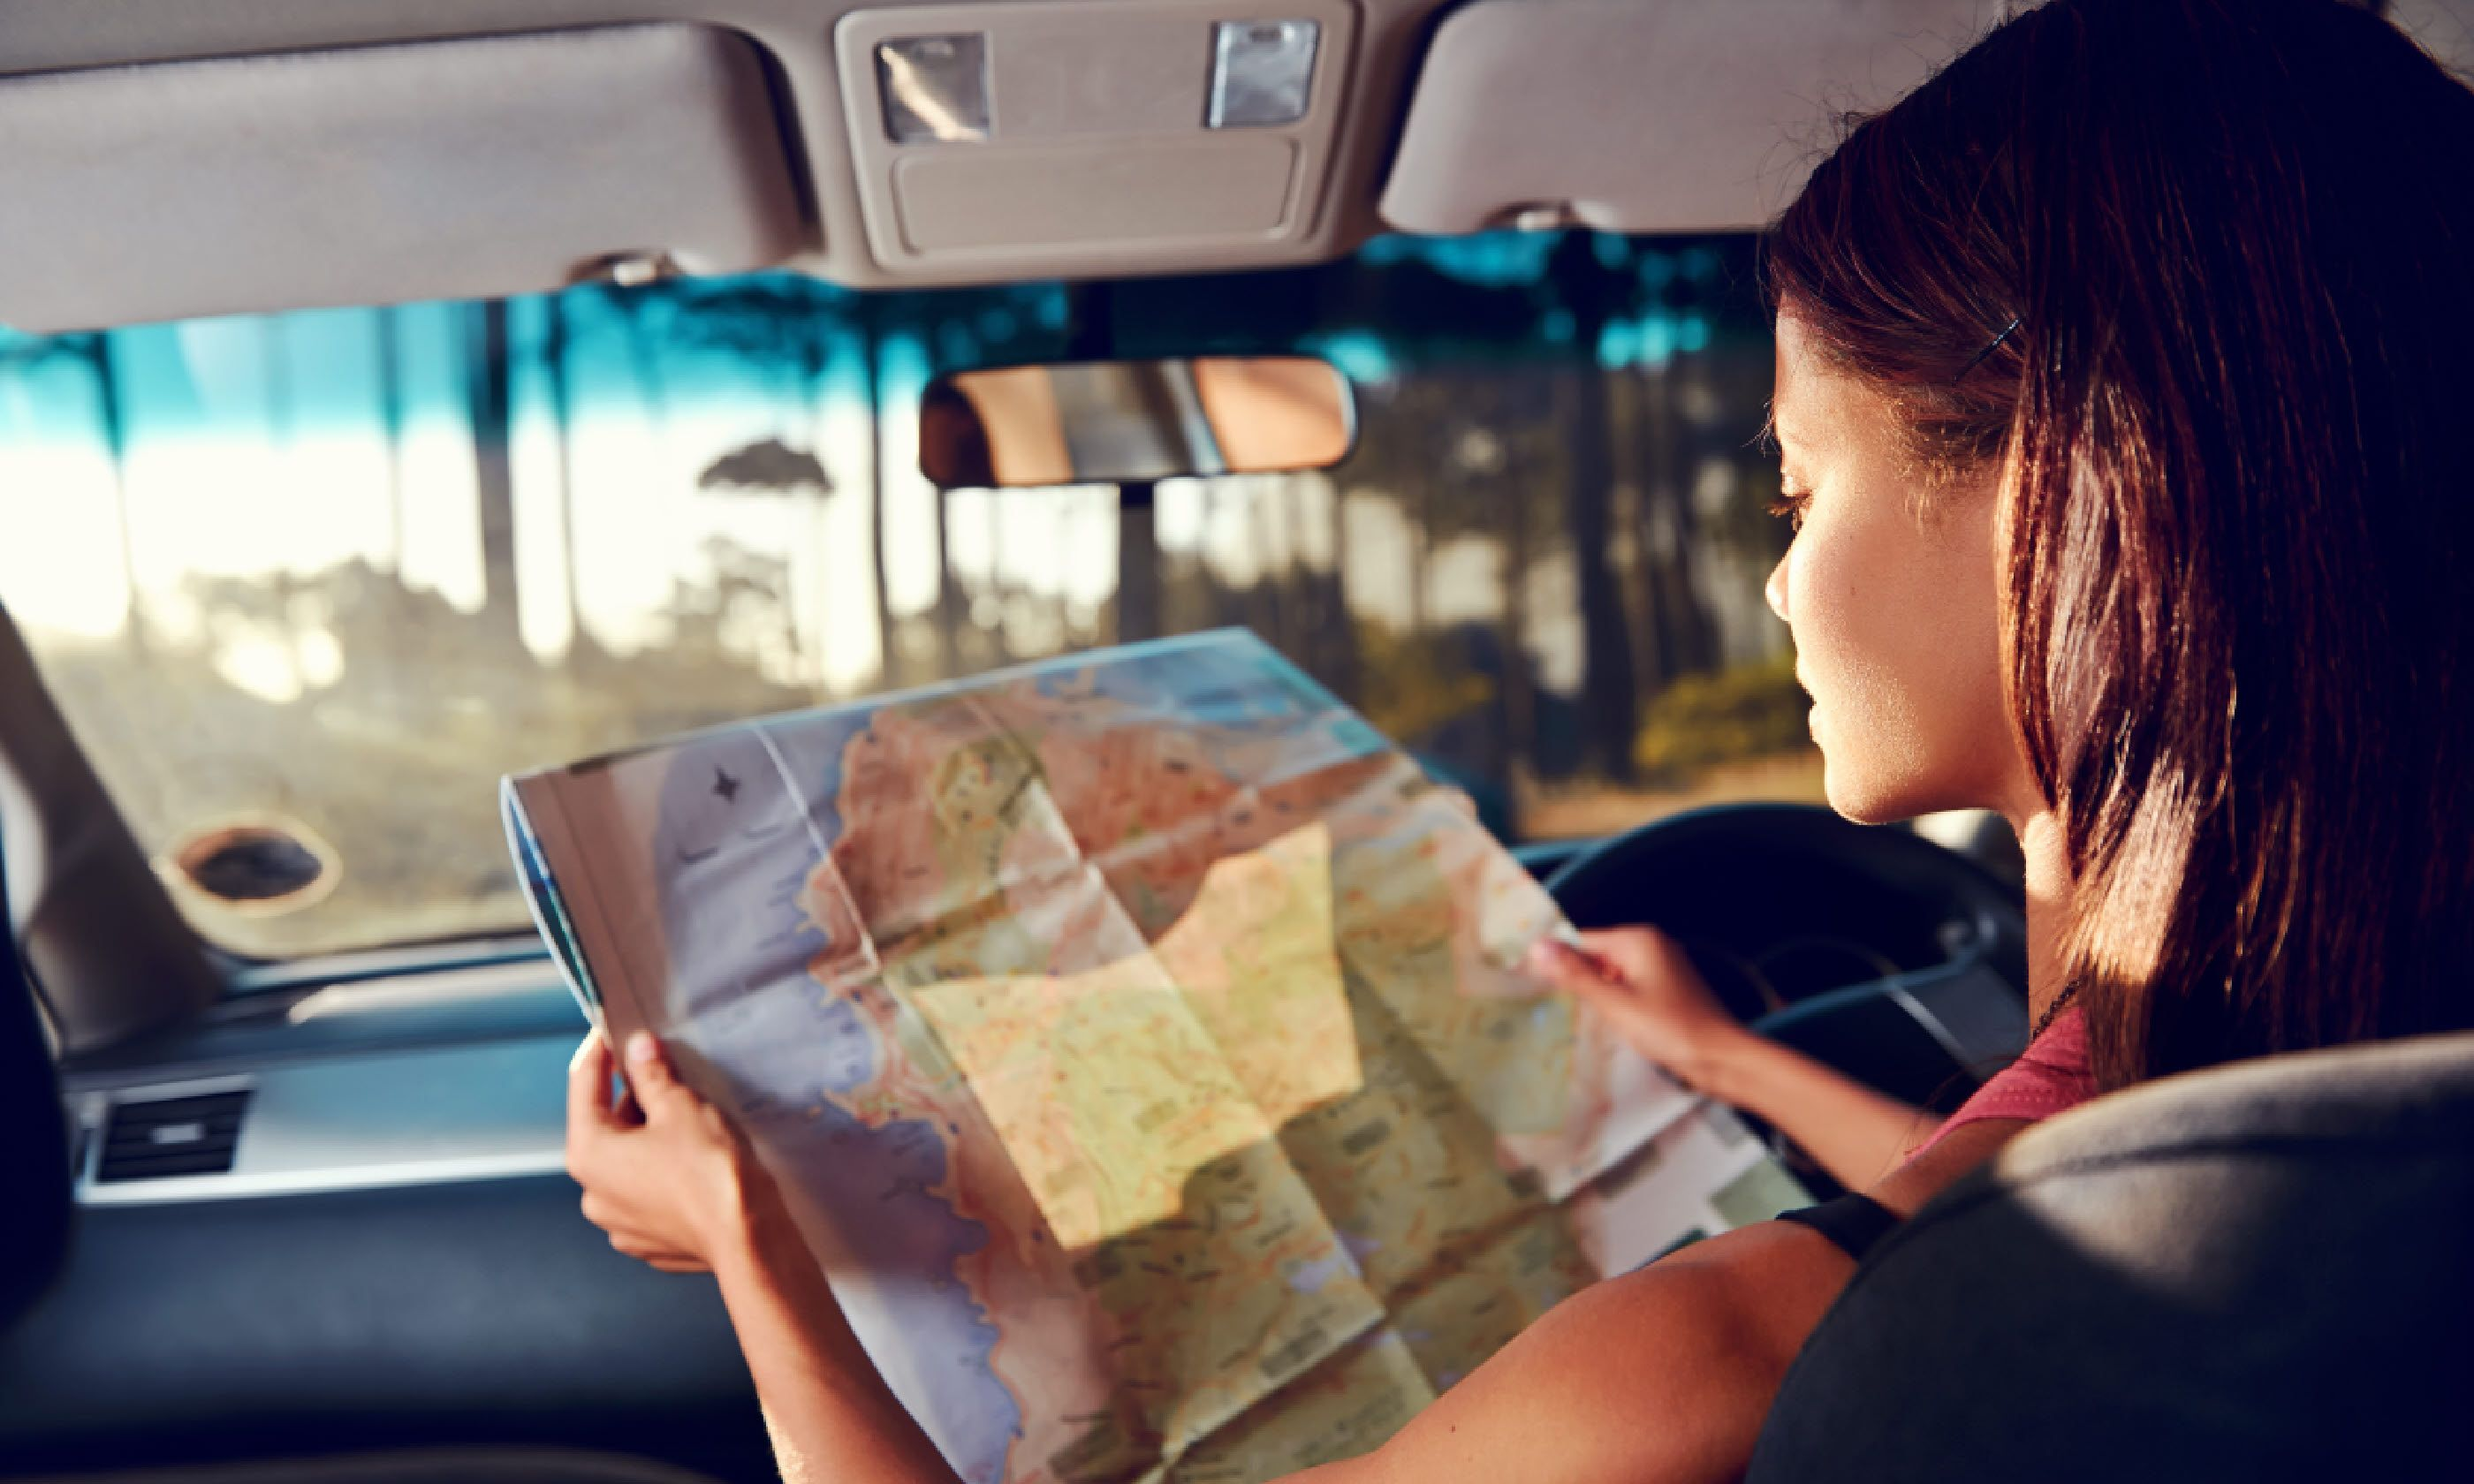 Road trips: sometimes it's best to just get out and walk, says Bill Bryson (Shutterstock)